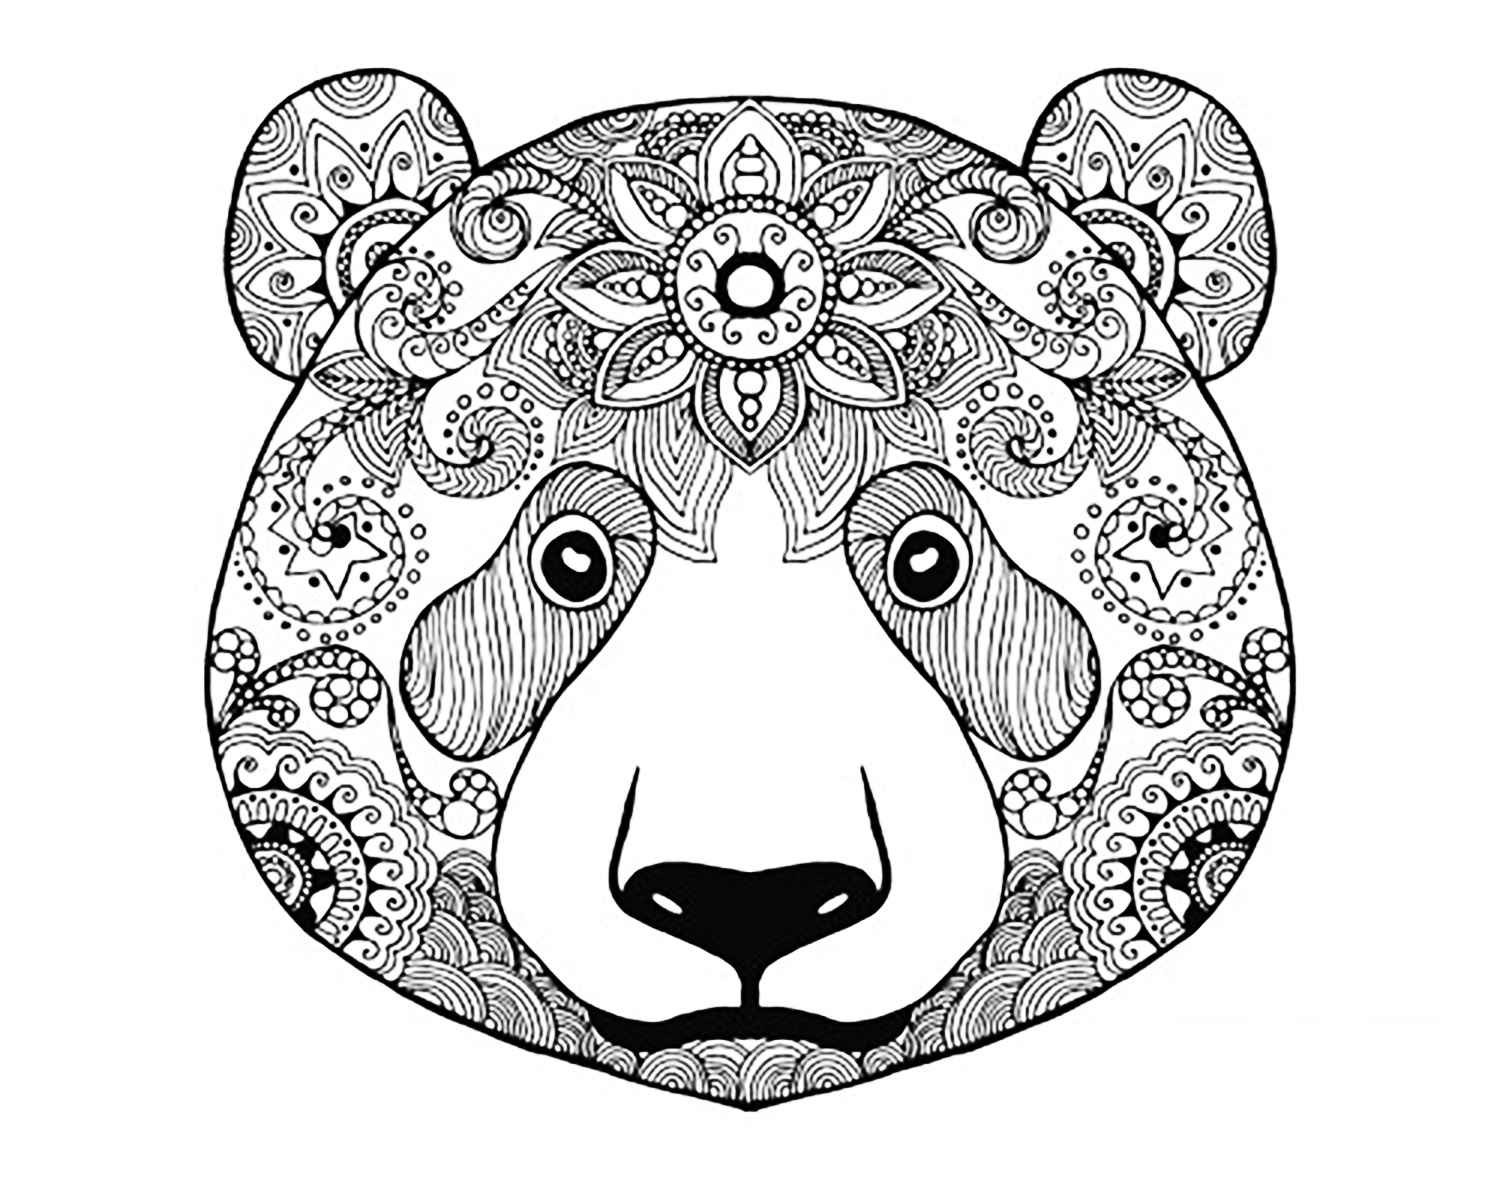 cheetah coloring pages for adults animal coloring pages for adults best coloring pages for pages cheetah for adults coloring